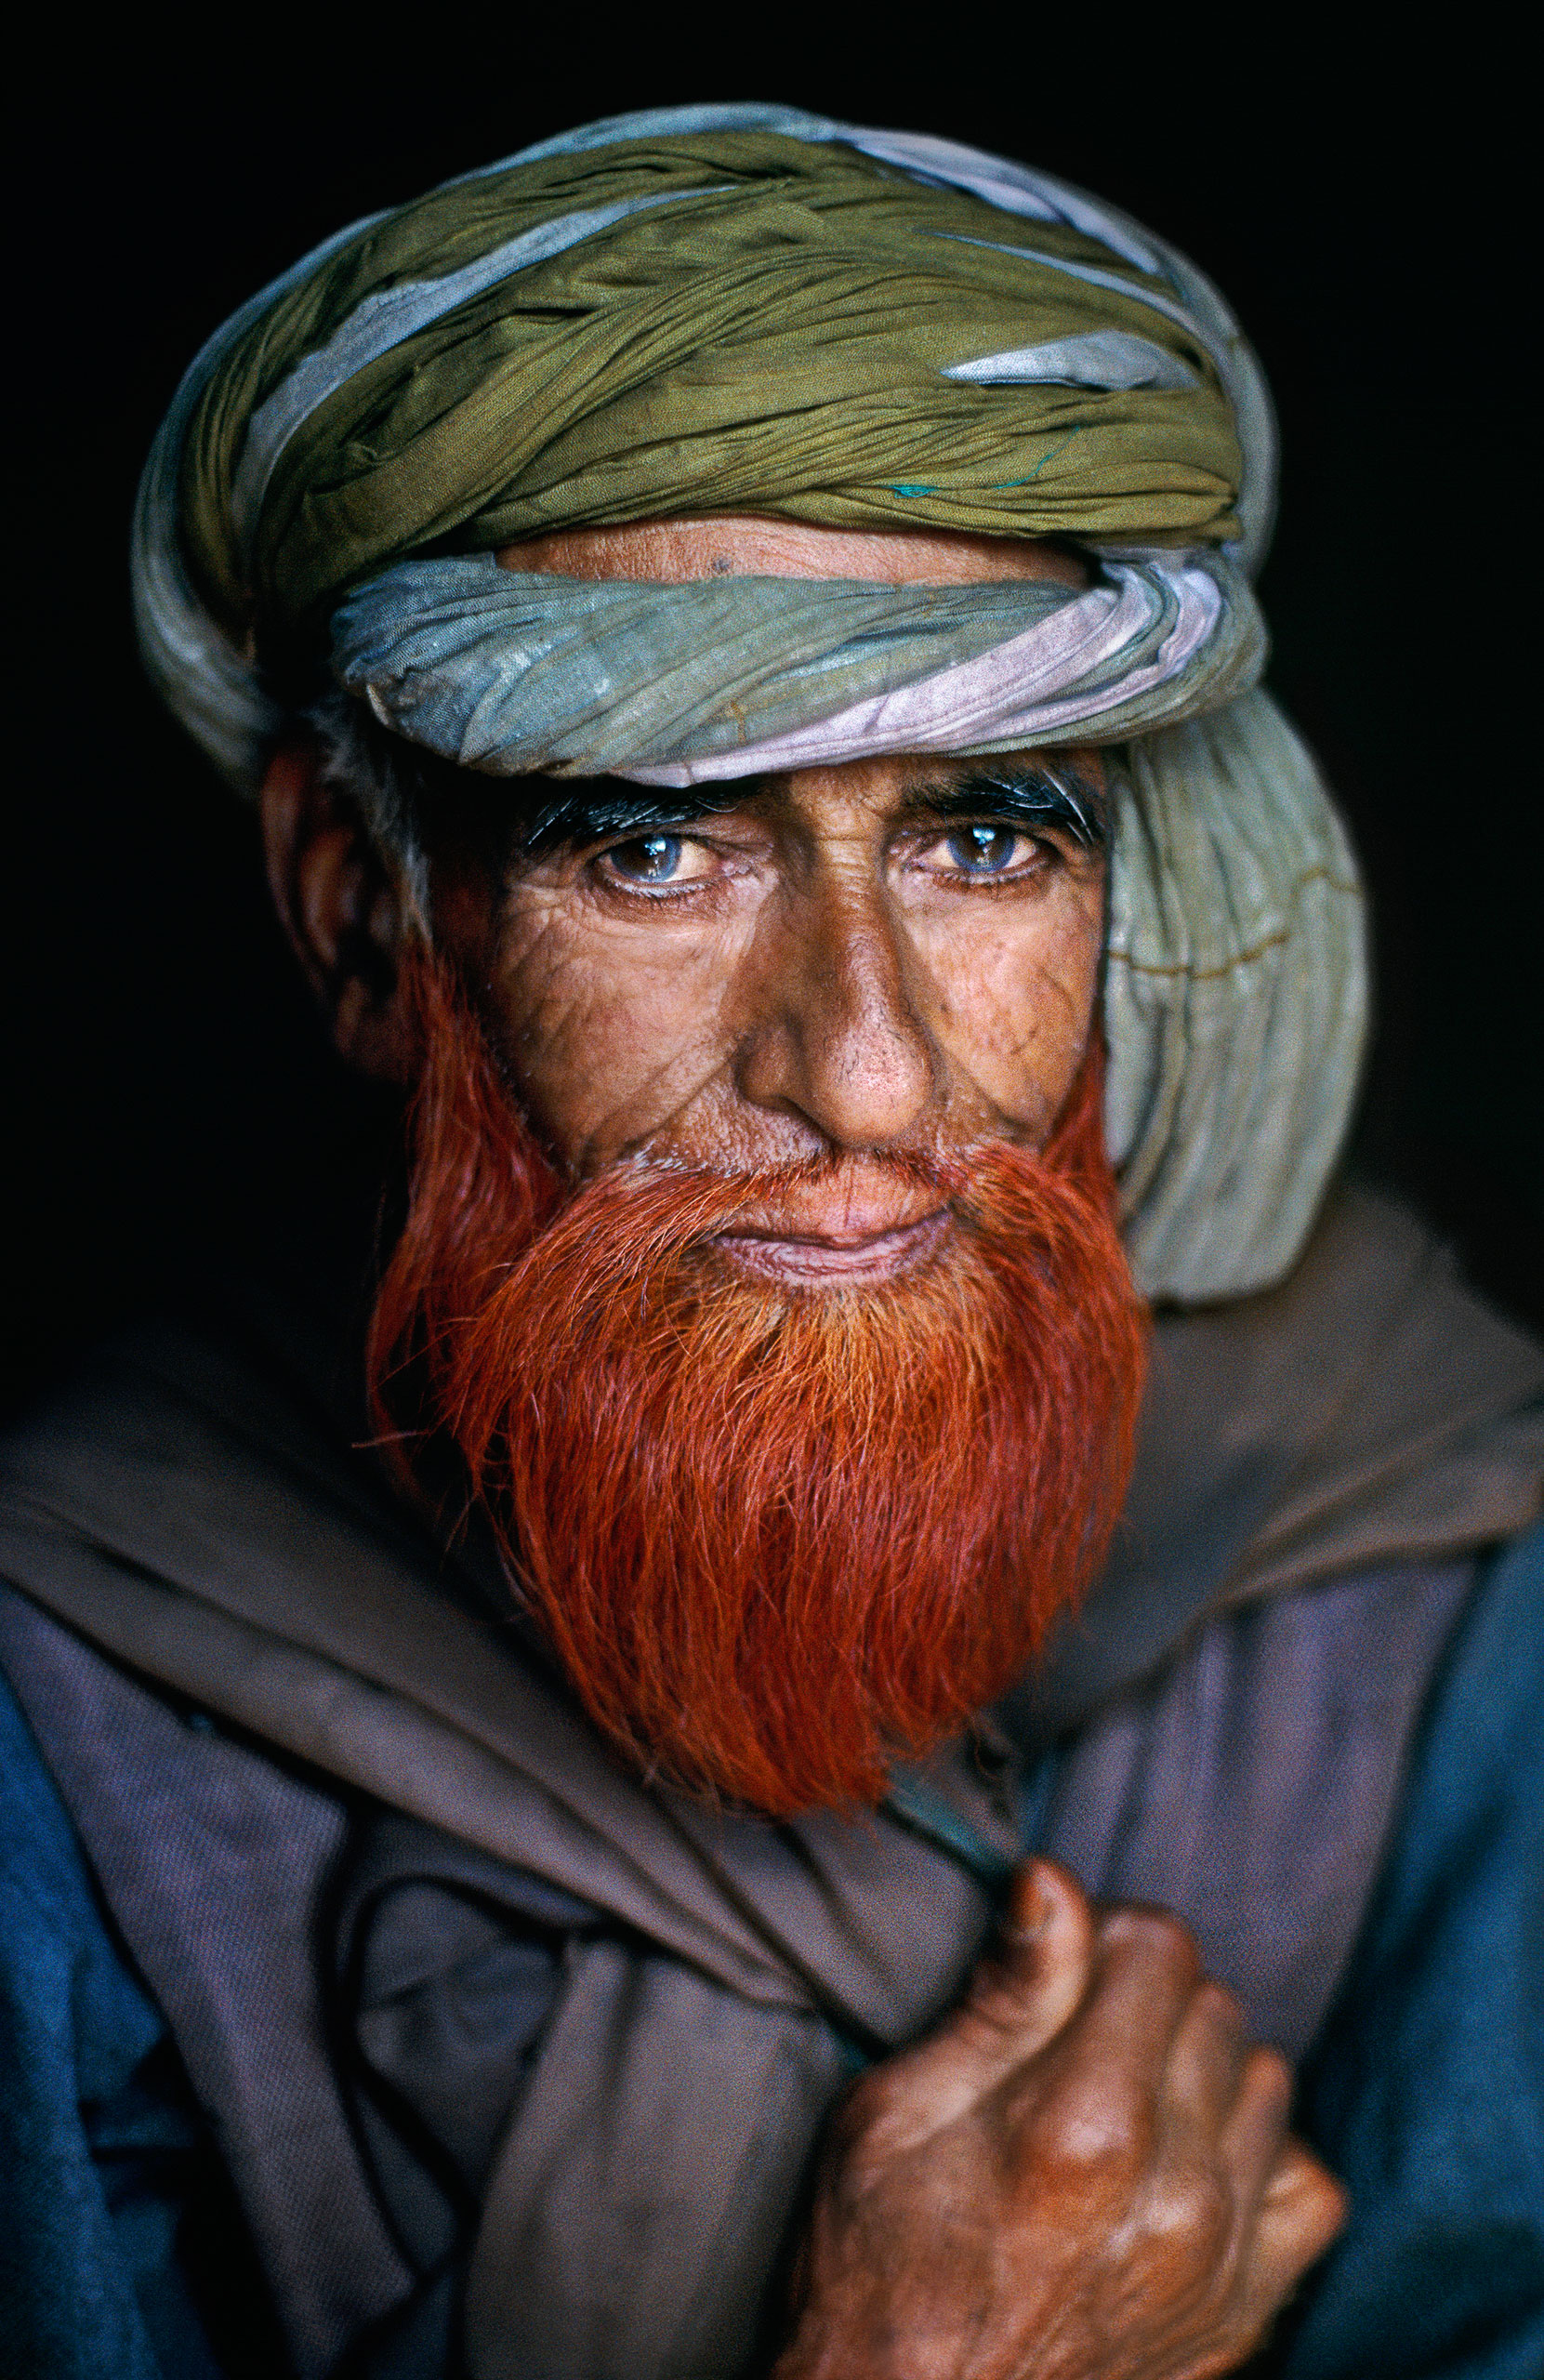 Man with a henna beard. Srinagar, Kashmir, 1995